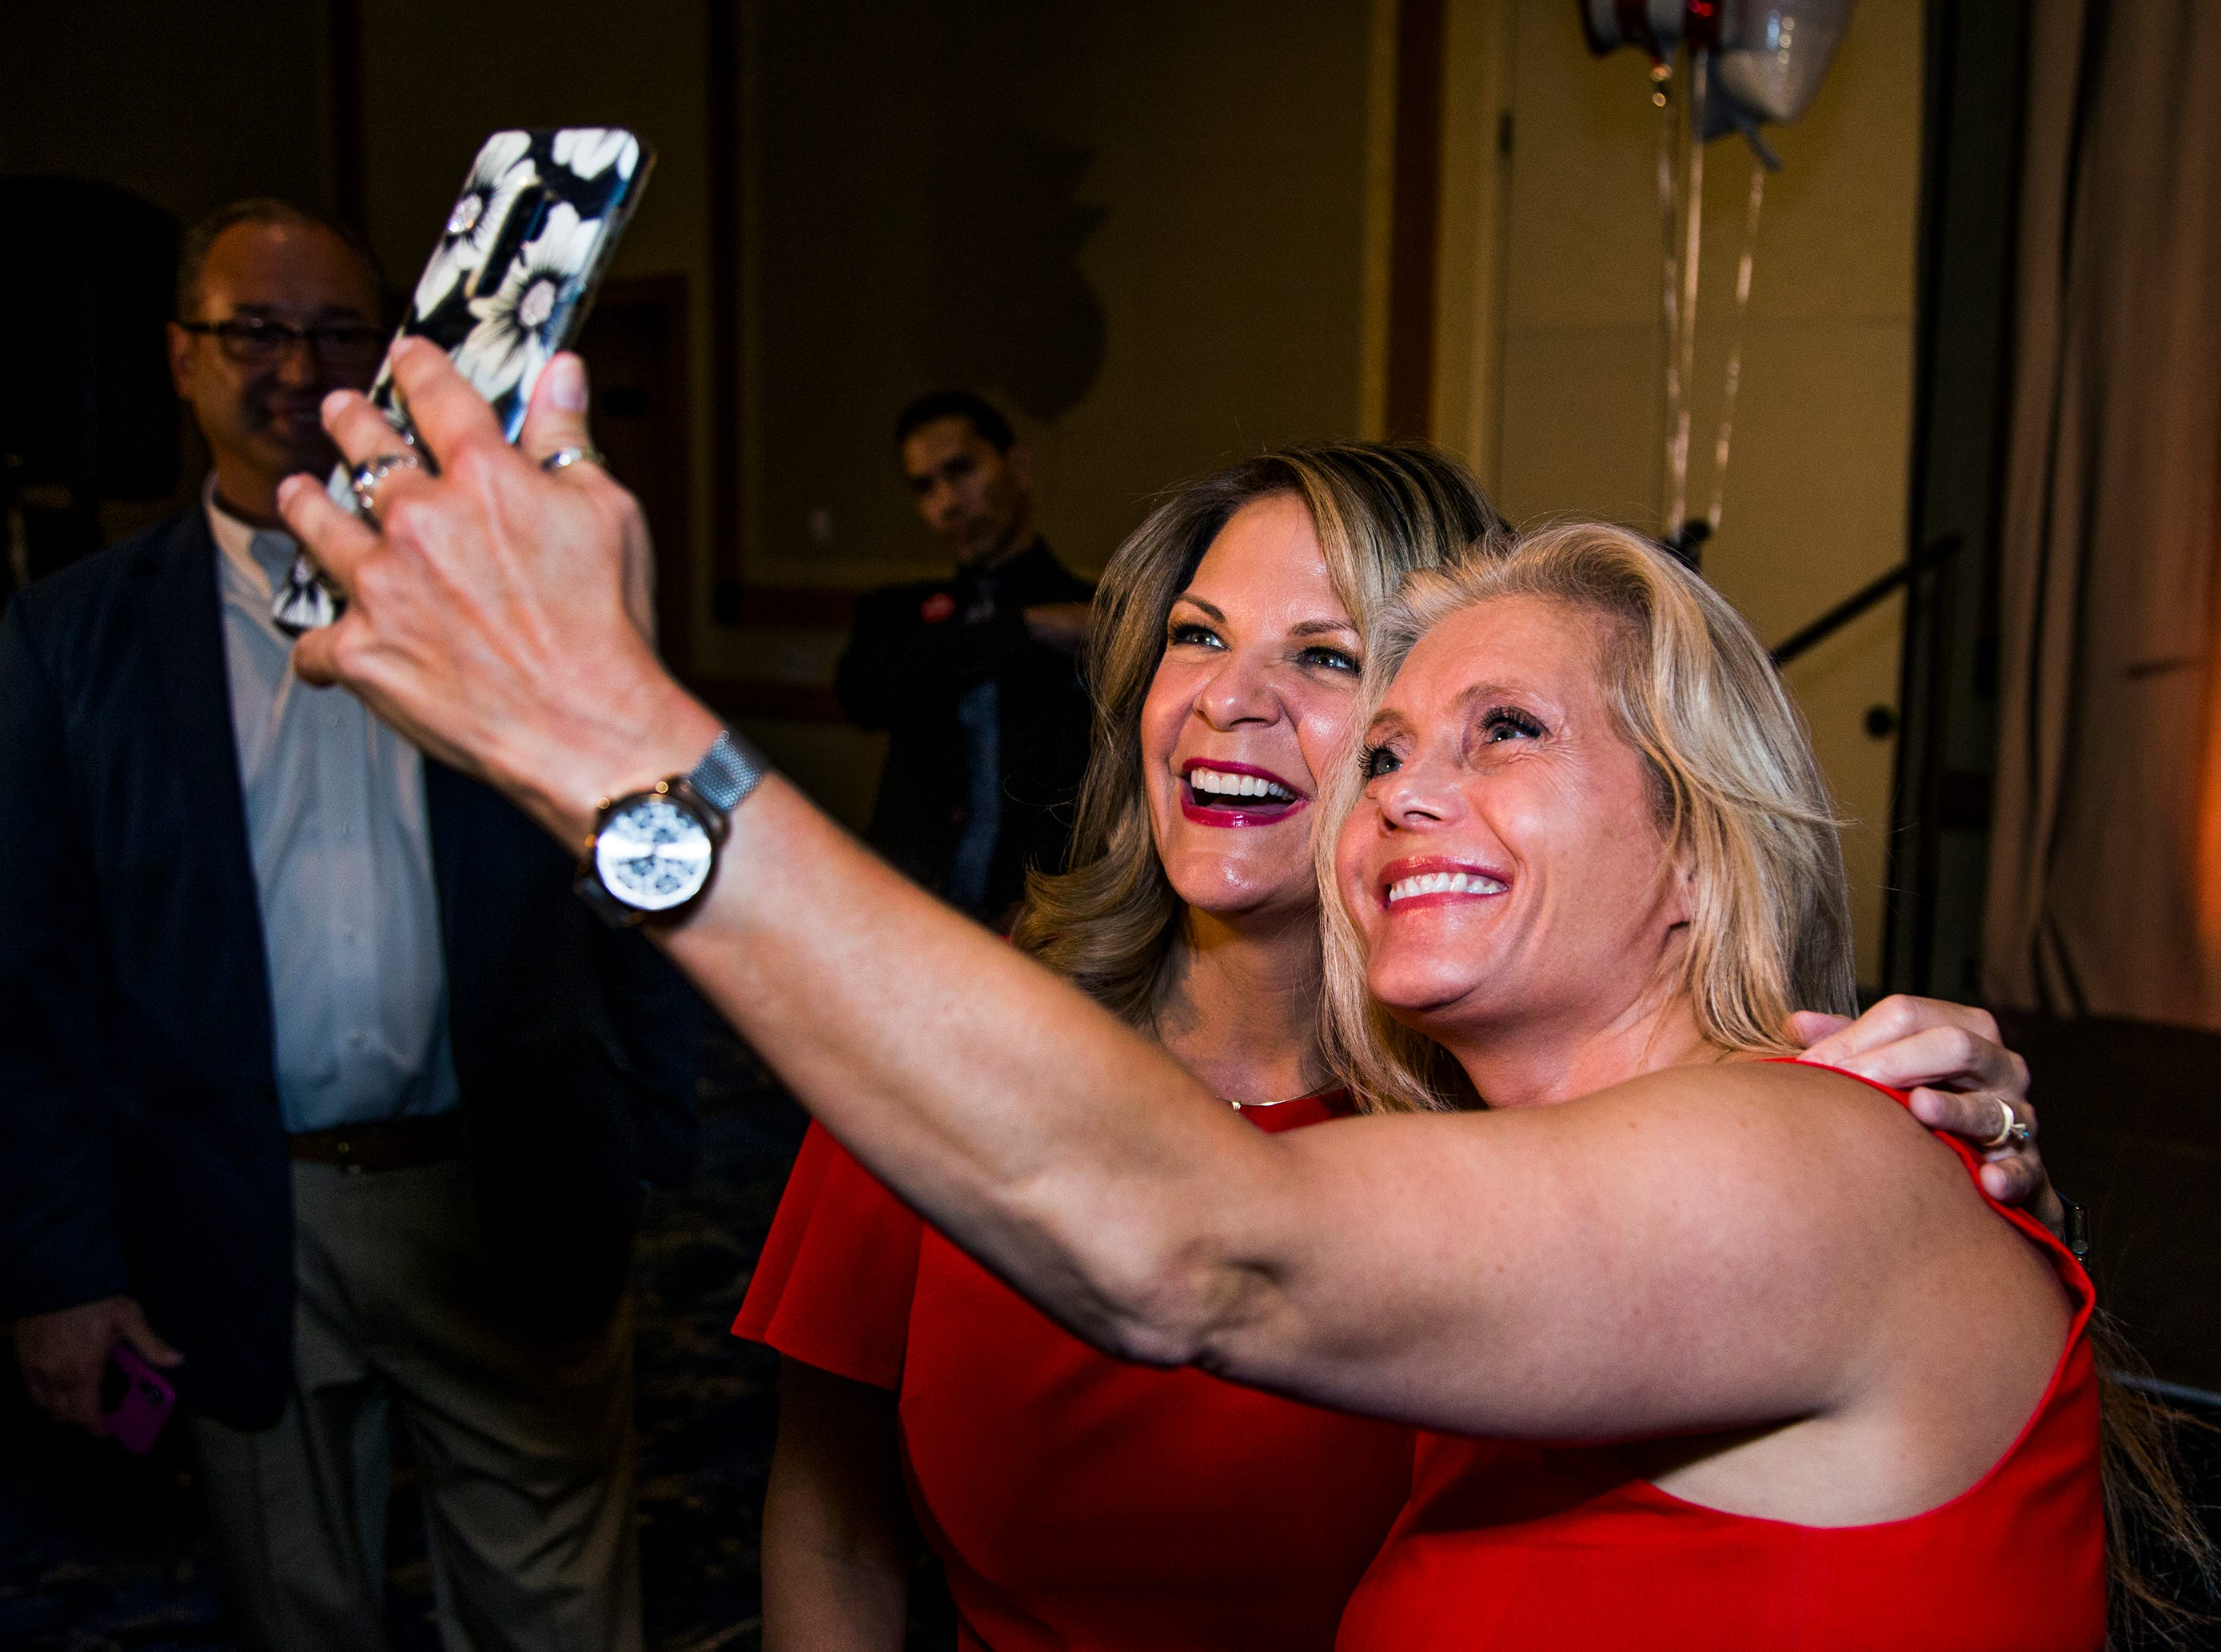 Kelli Ward (left) takes a selfie with supporter Suzette Meyers during a primary election night party at Embassy Suites Scottsdale, Aug. 28, 2018.